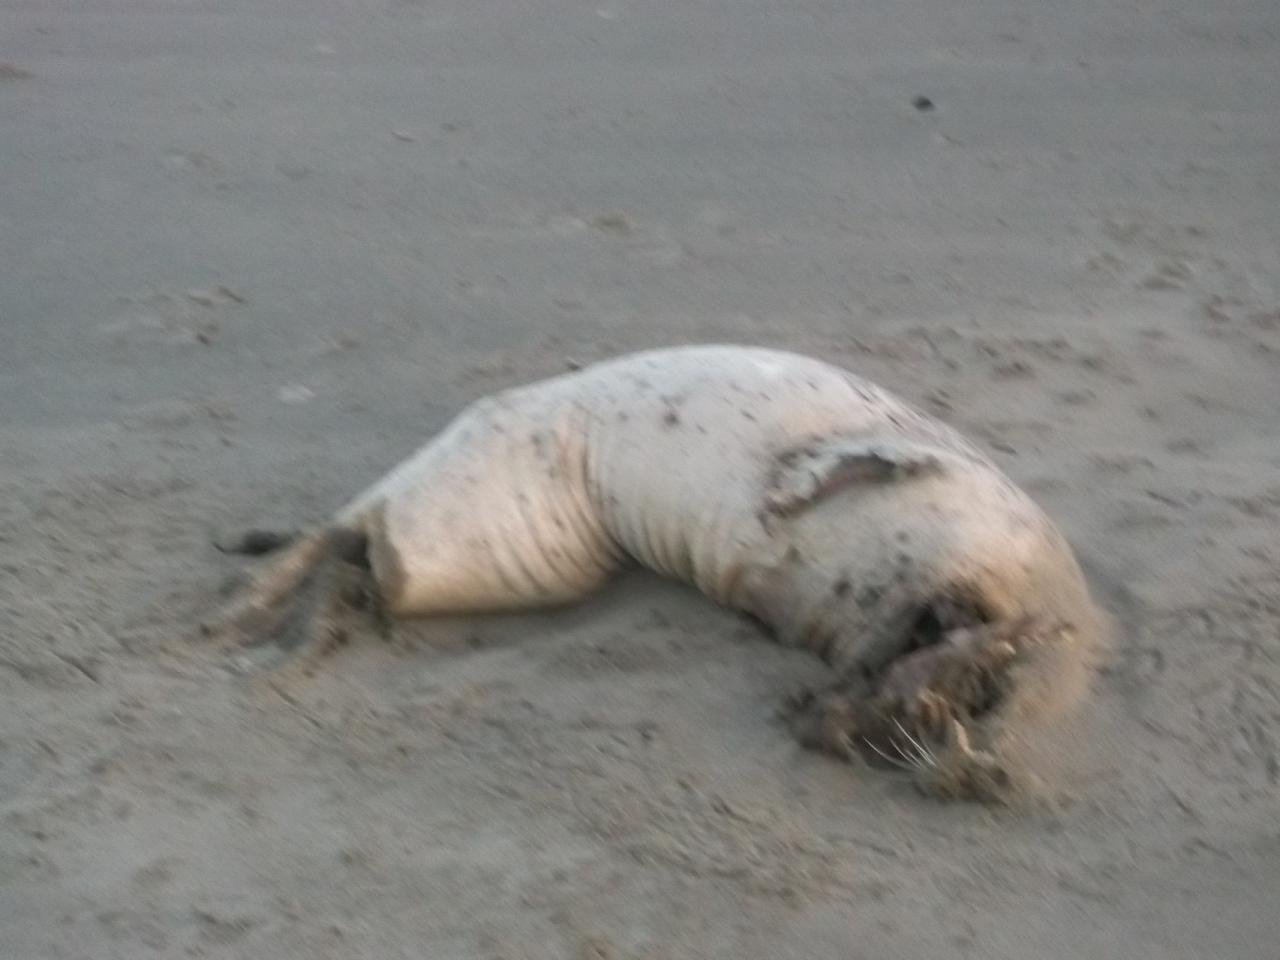 A dead harbor seal lays on the high-tide area at the northern edge of Mile 101 just below Coquille Point.